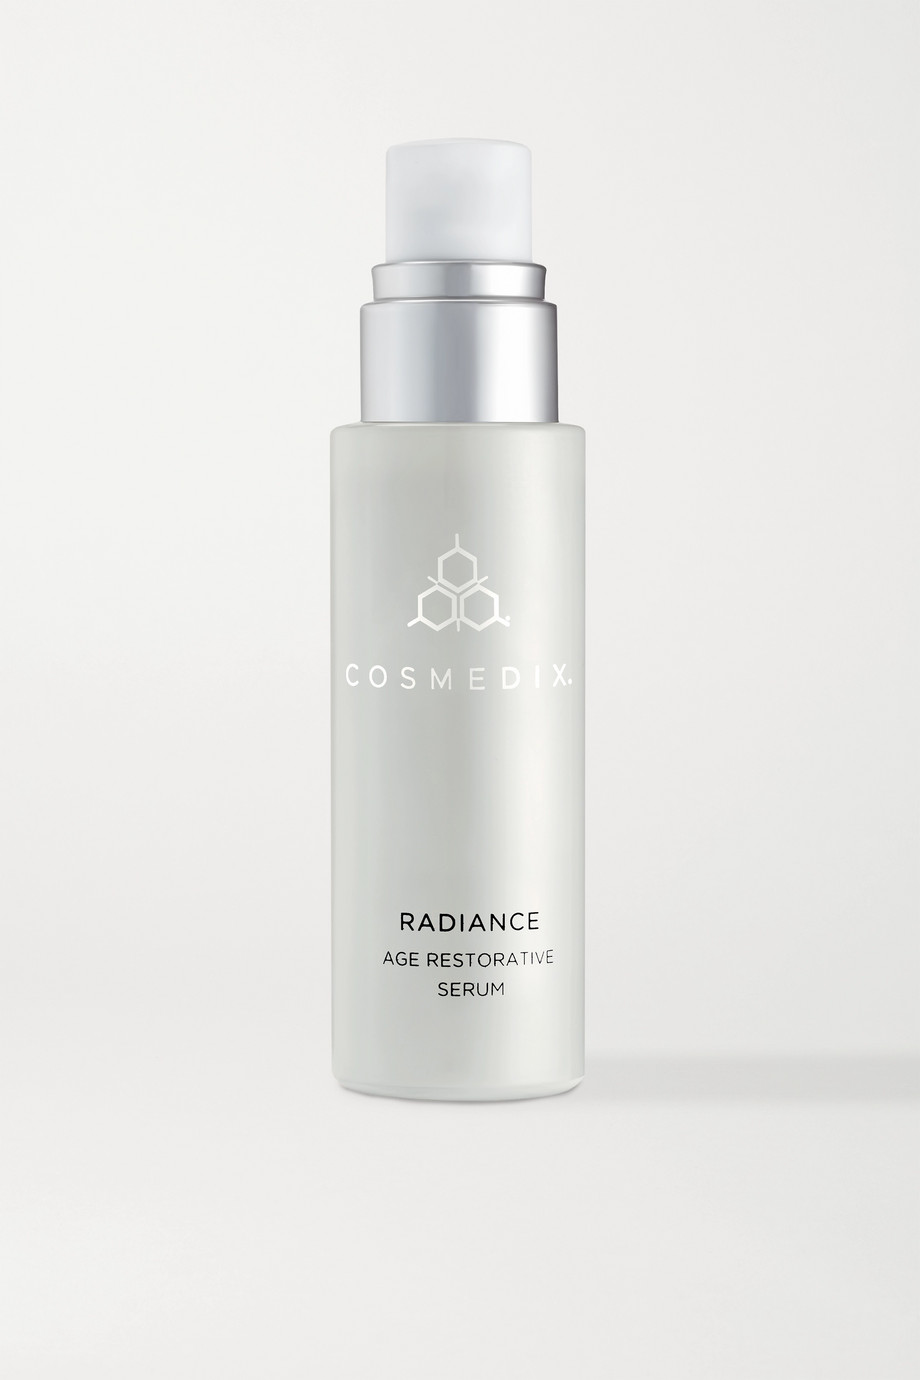 Cosmedix Sérum anti-âge revitalisant Radiance